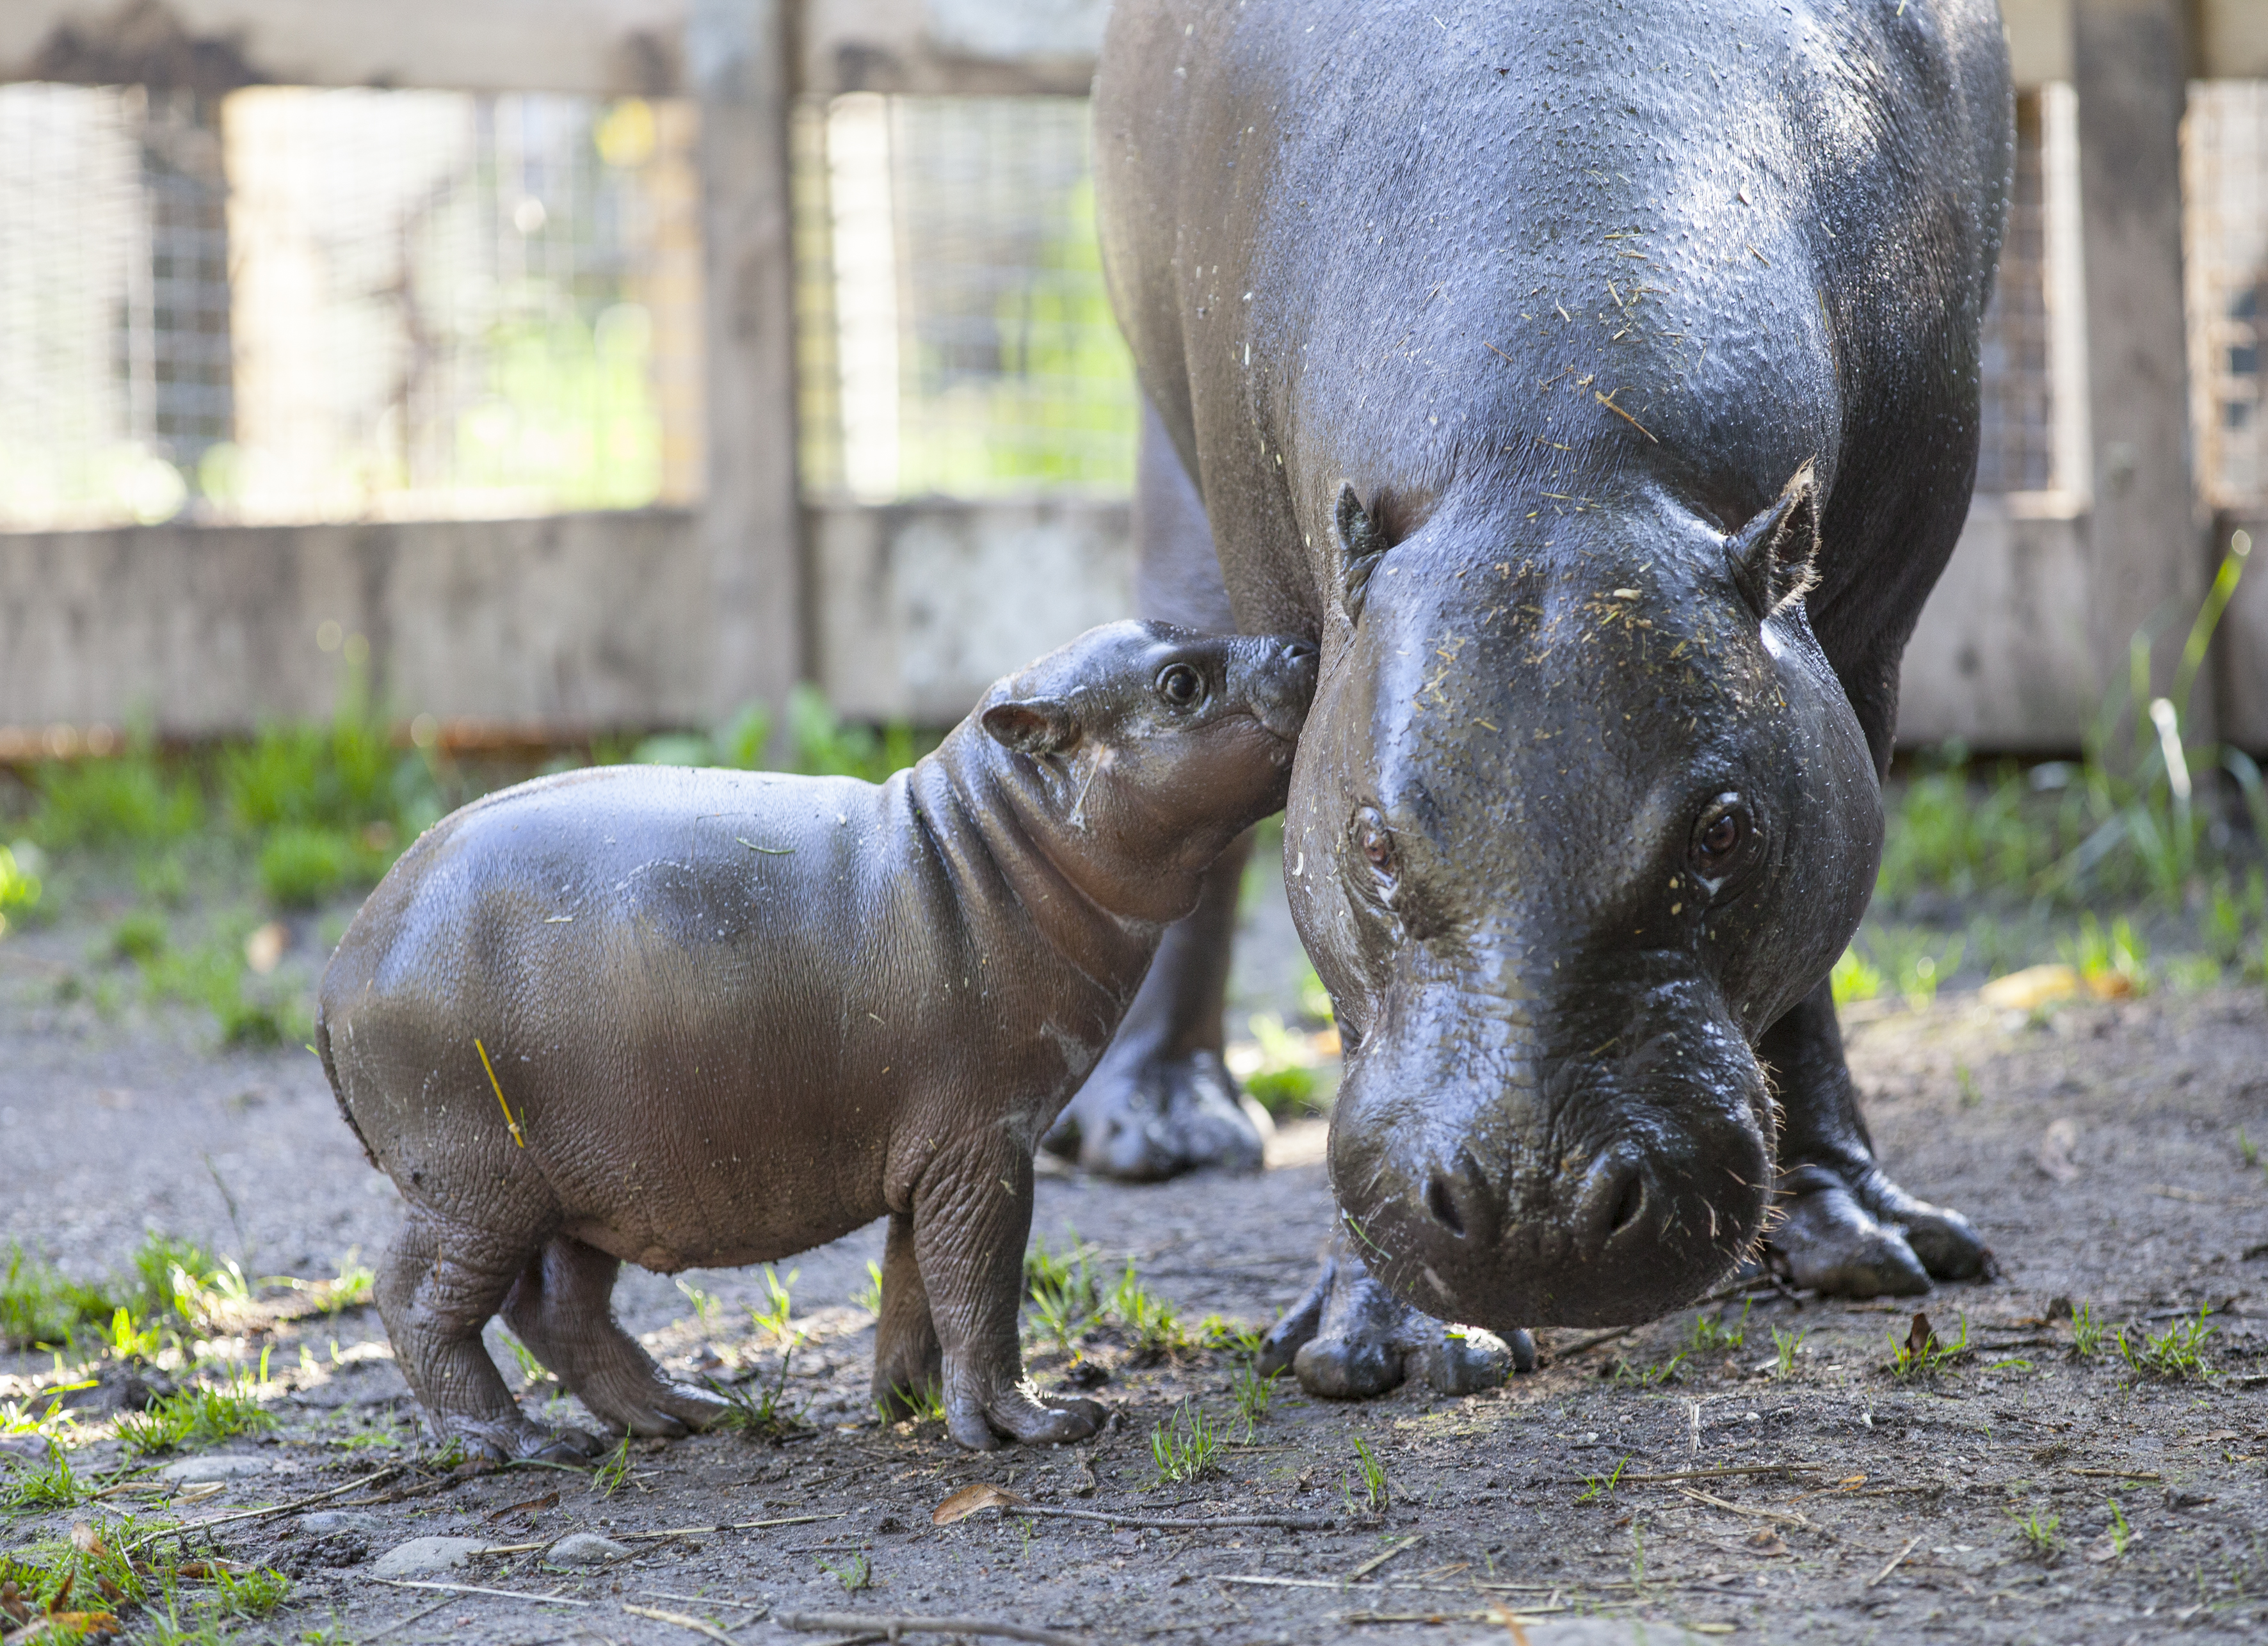 Cute baby Dwarf Hippo arrives at Parken Zoo in Sweden